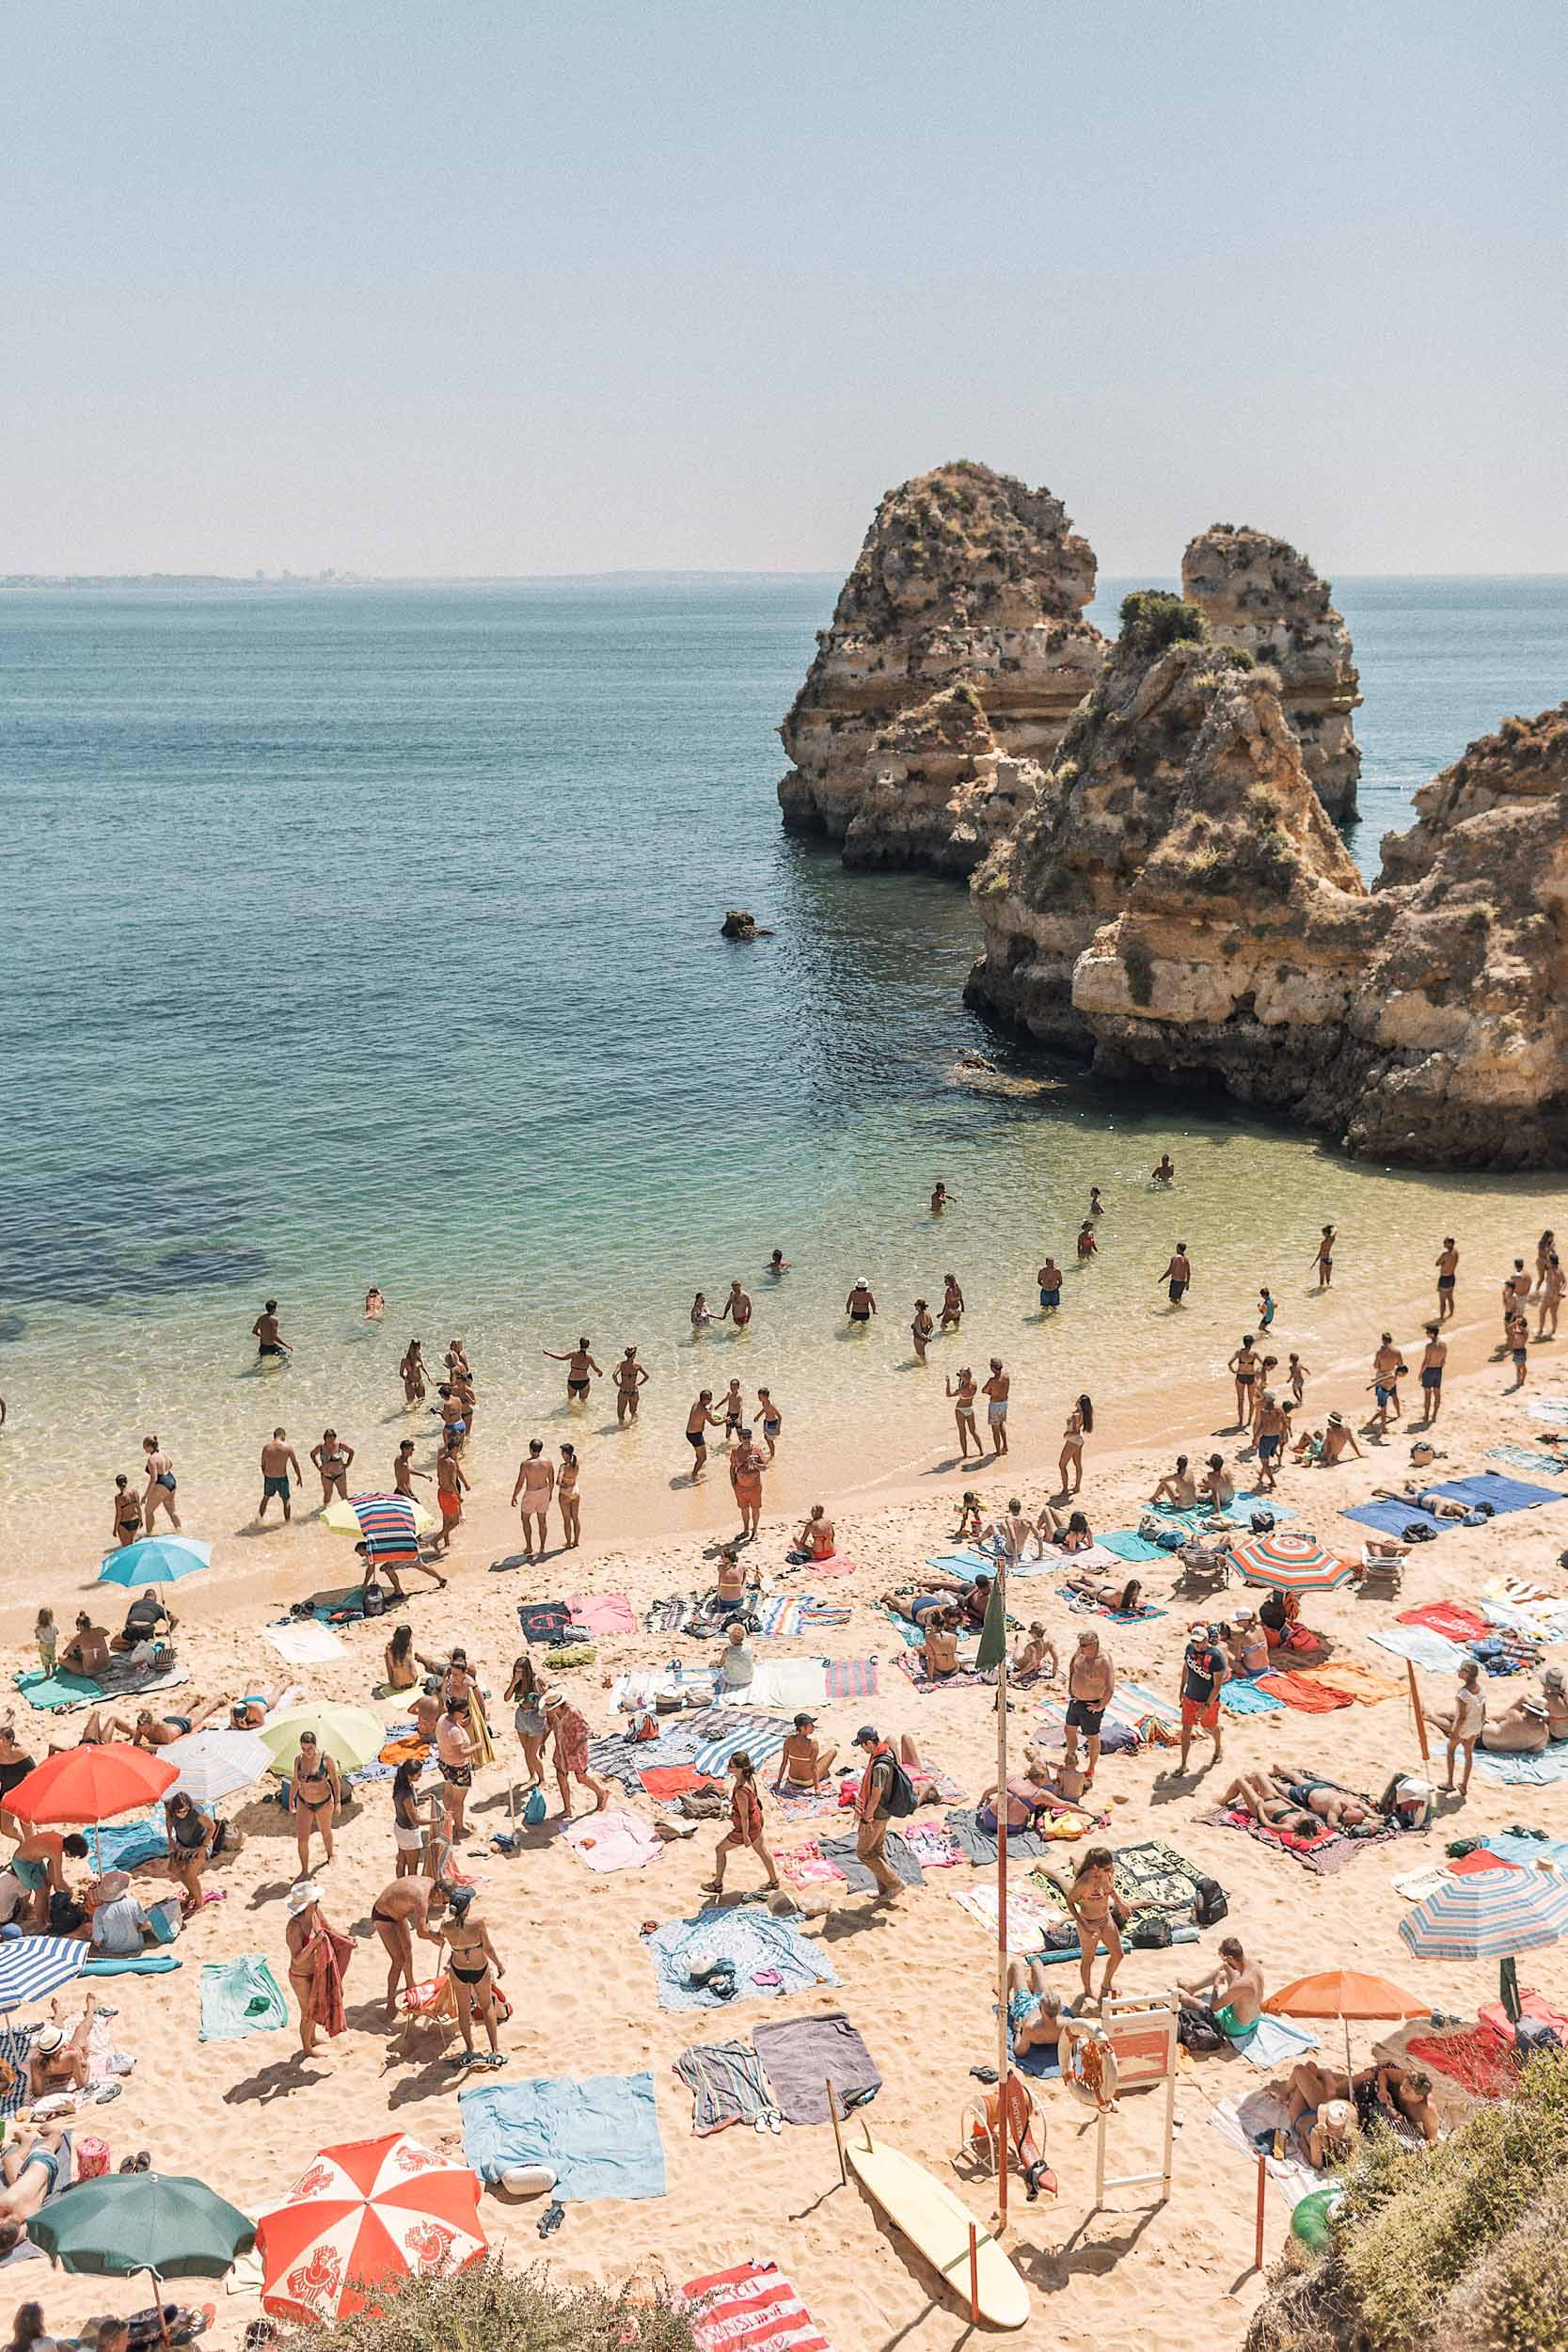 Lagos is located in the Algarve region on the southern coast of Portugal